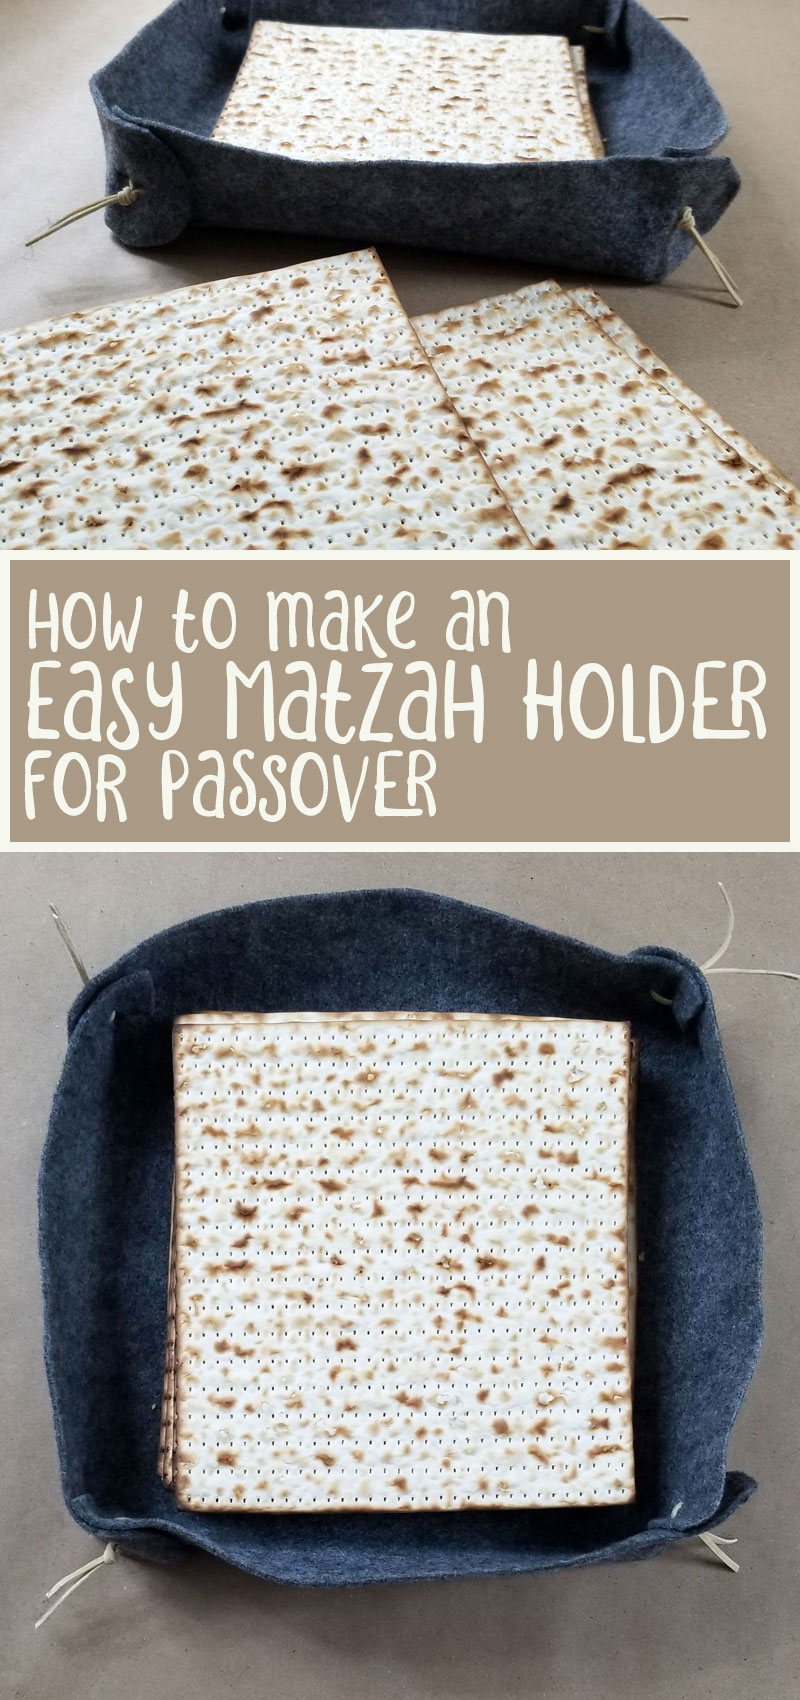 Make your own matzah plate - a cool Pesach craft for anyone! this DIY Passover craft is a felt matzah tray for your seder that anyone can make